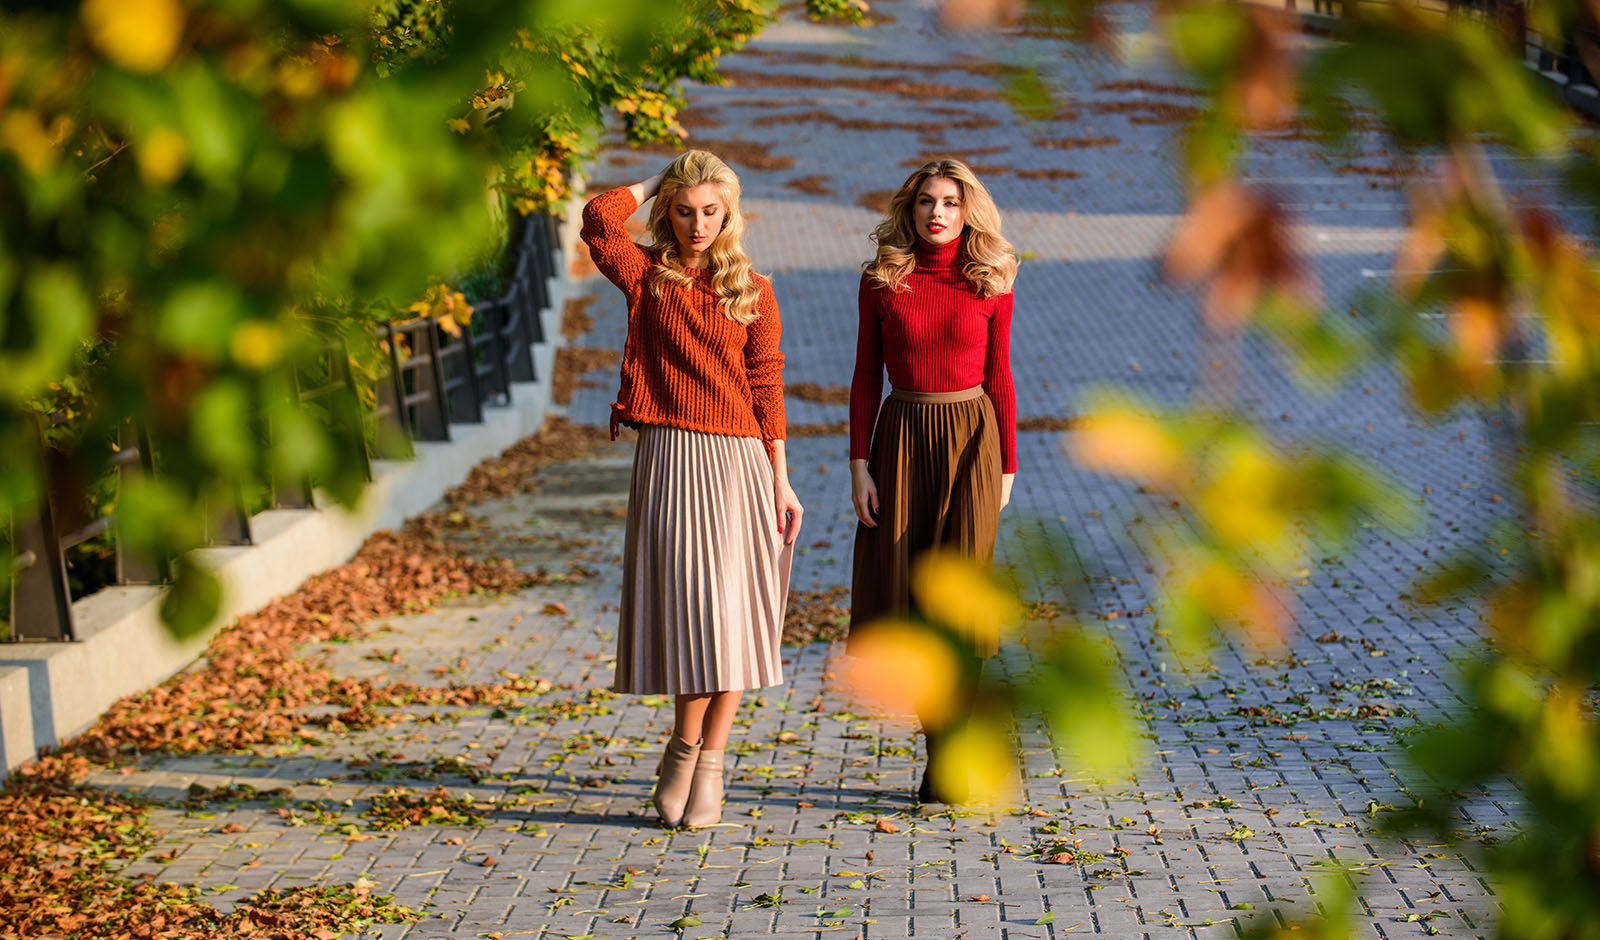 Fall fashion. Adorable ladies enjoy sunny autumn day. Fashionable clothes. Femininity and tenderness. Women walking in autumn park. Pleated skirt fashion trend. Friends girls. Autumn stylish outfit